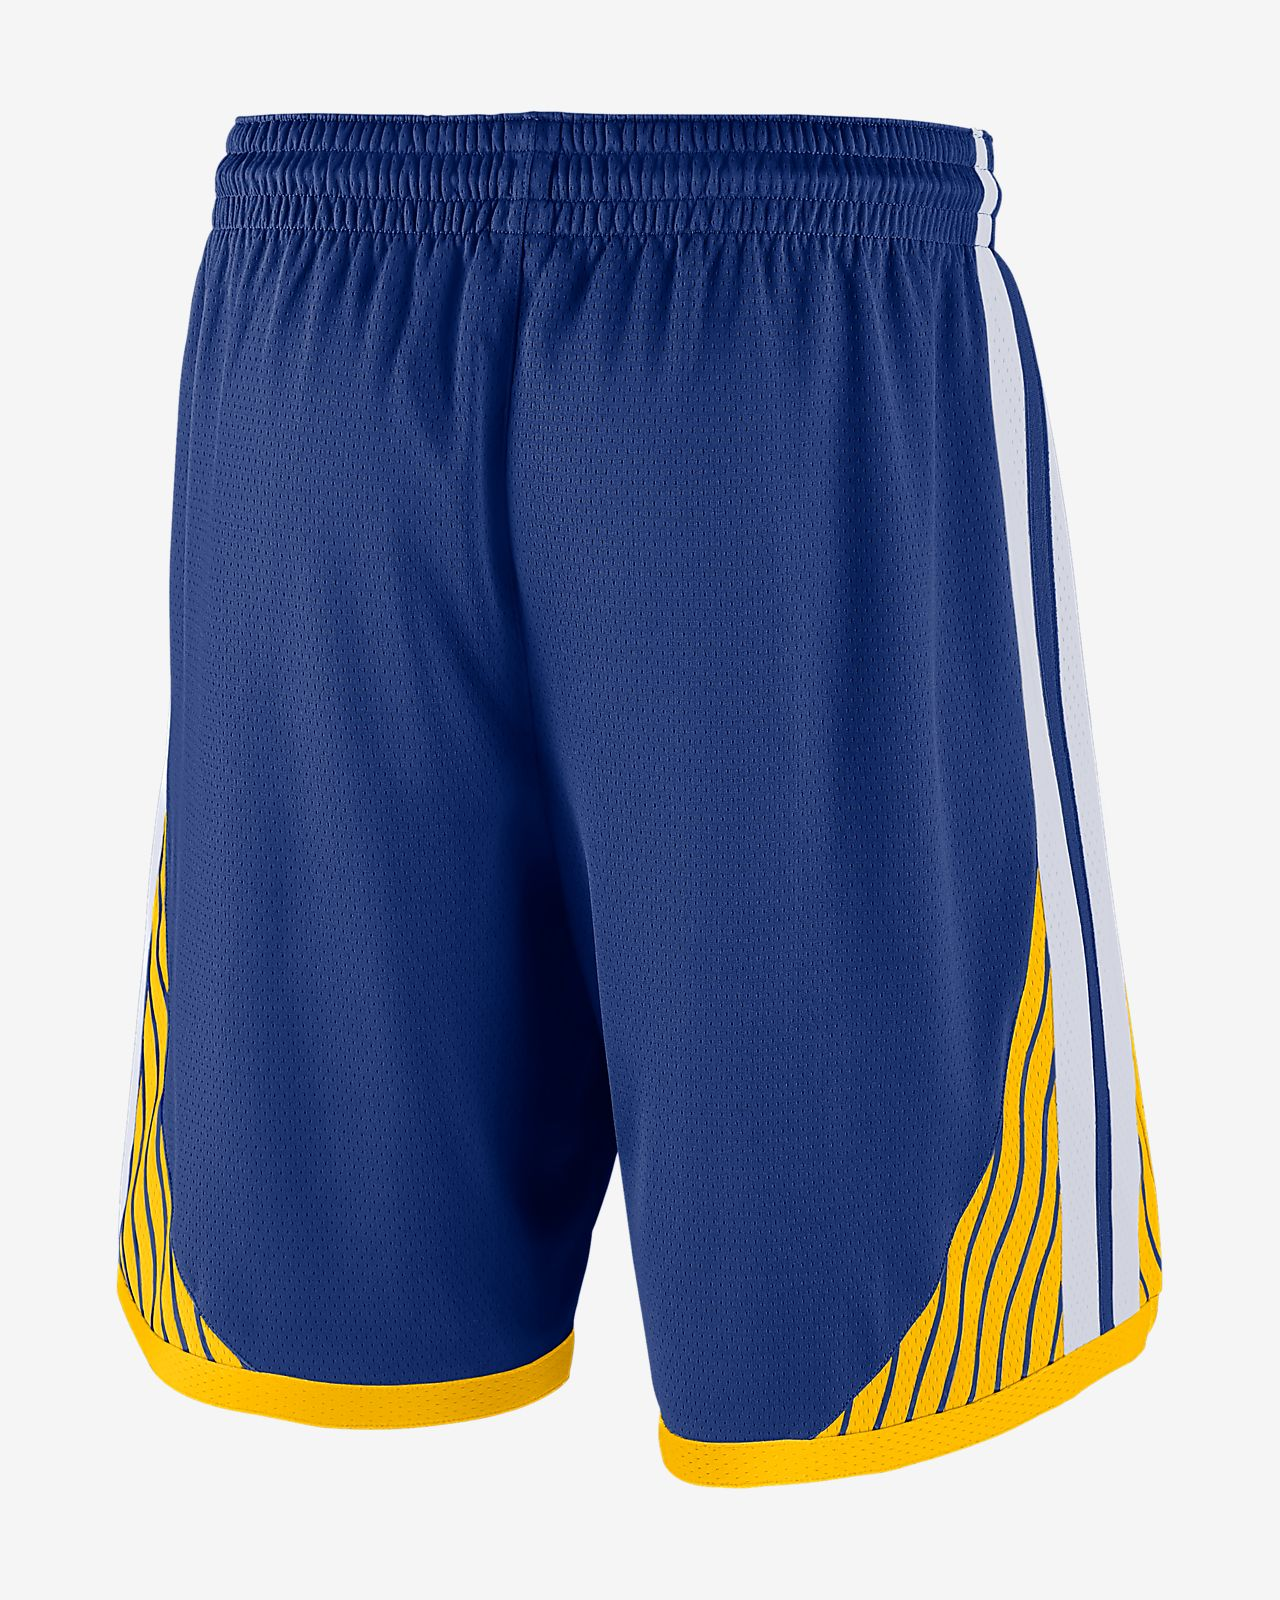 newest 553e8 f486a ... Golden State Warriors Icon Edition Swingman Men s Nike NBA Shorts